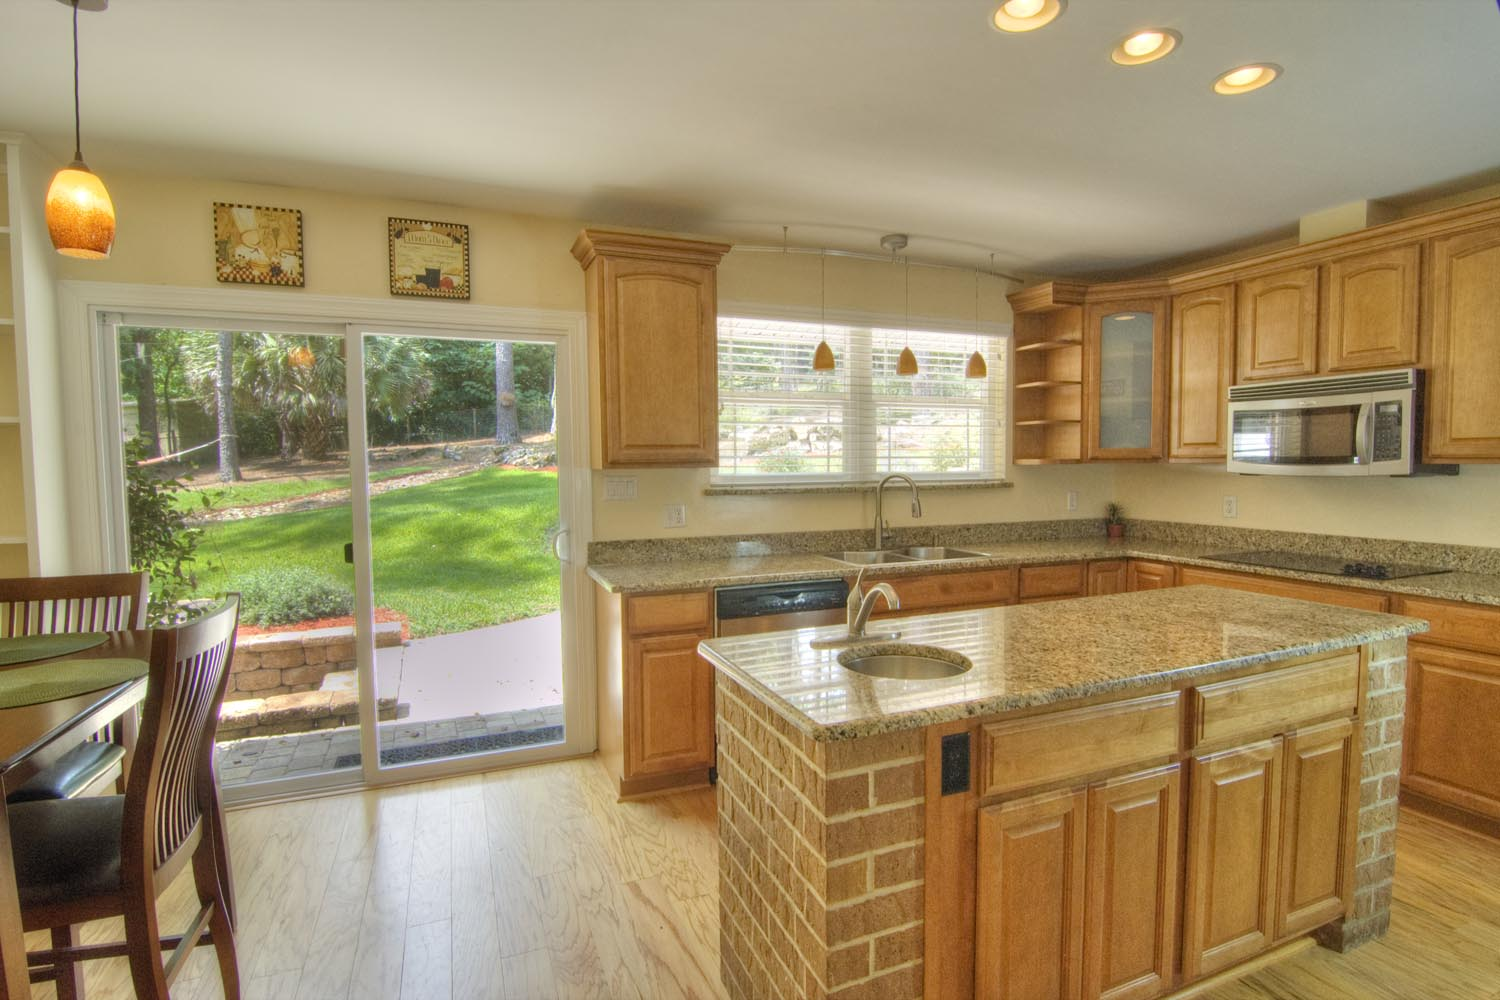 Off the Market: Home For Sale in Colclough Hills